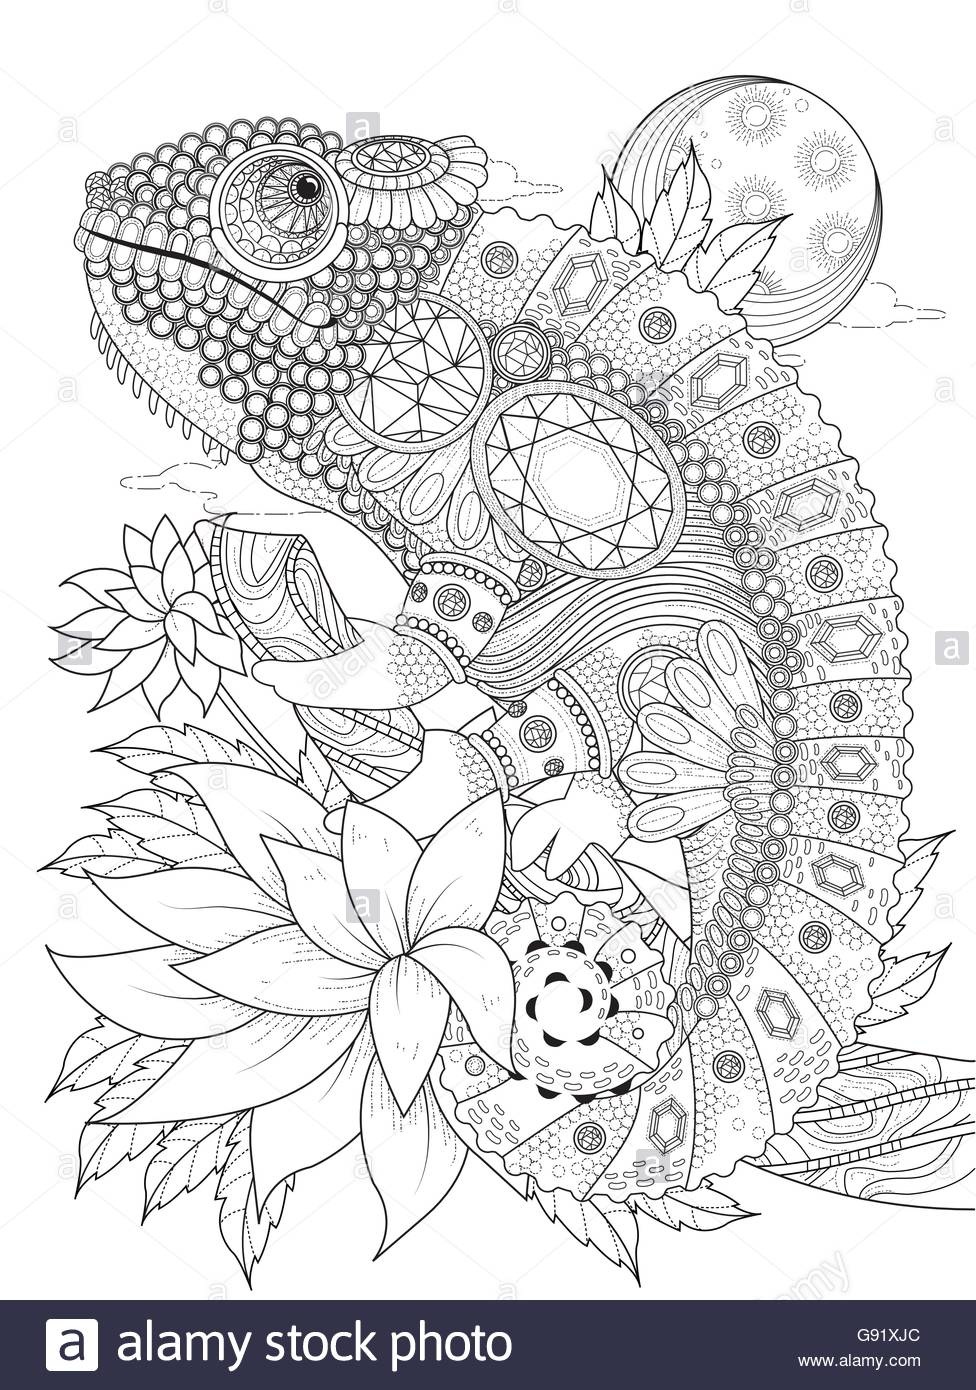 976x1390 Adult Coloring Page